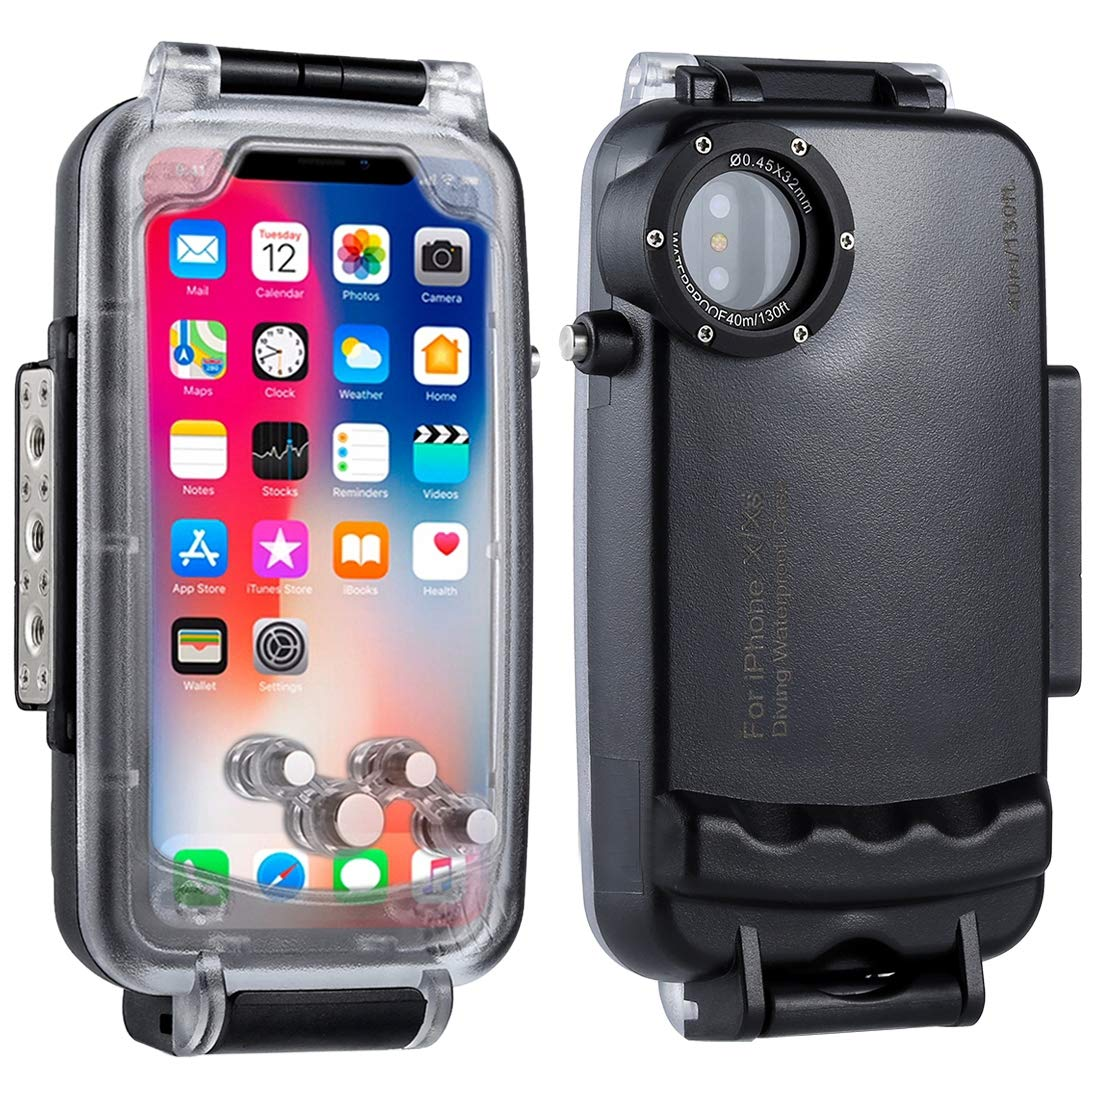 HAWEEL iPhone X/XS Underwater Housing Professional [40m/130ft] Diving Case for Diving Surfing Swimming Snorkeling Photo Video with Lanyard (iPhone X/XS, Black) by HAWEEL